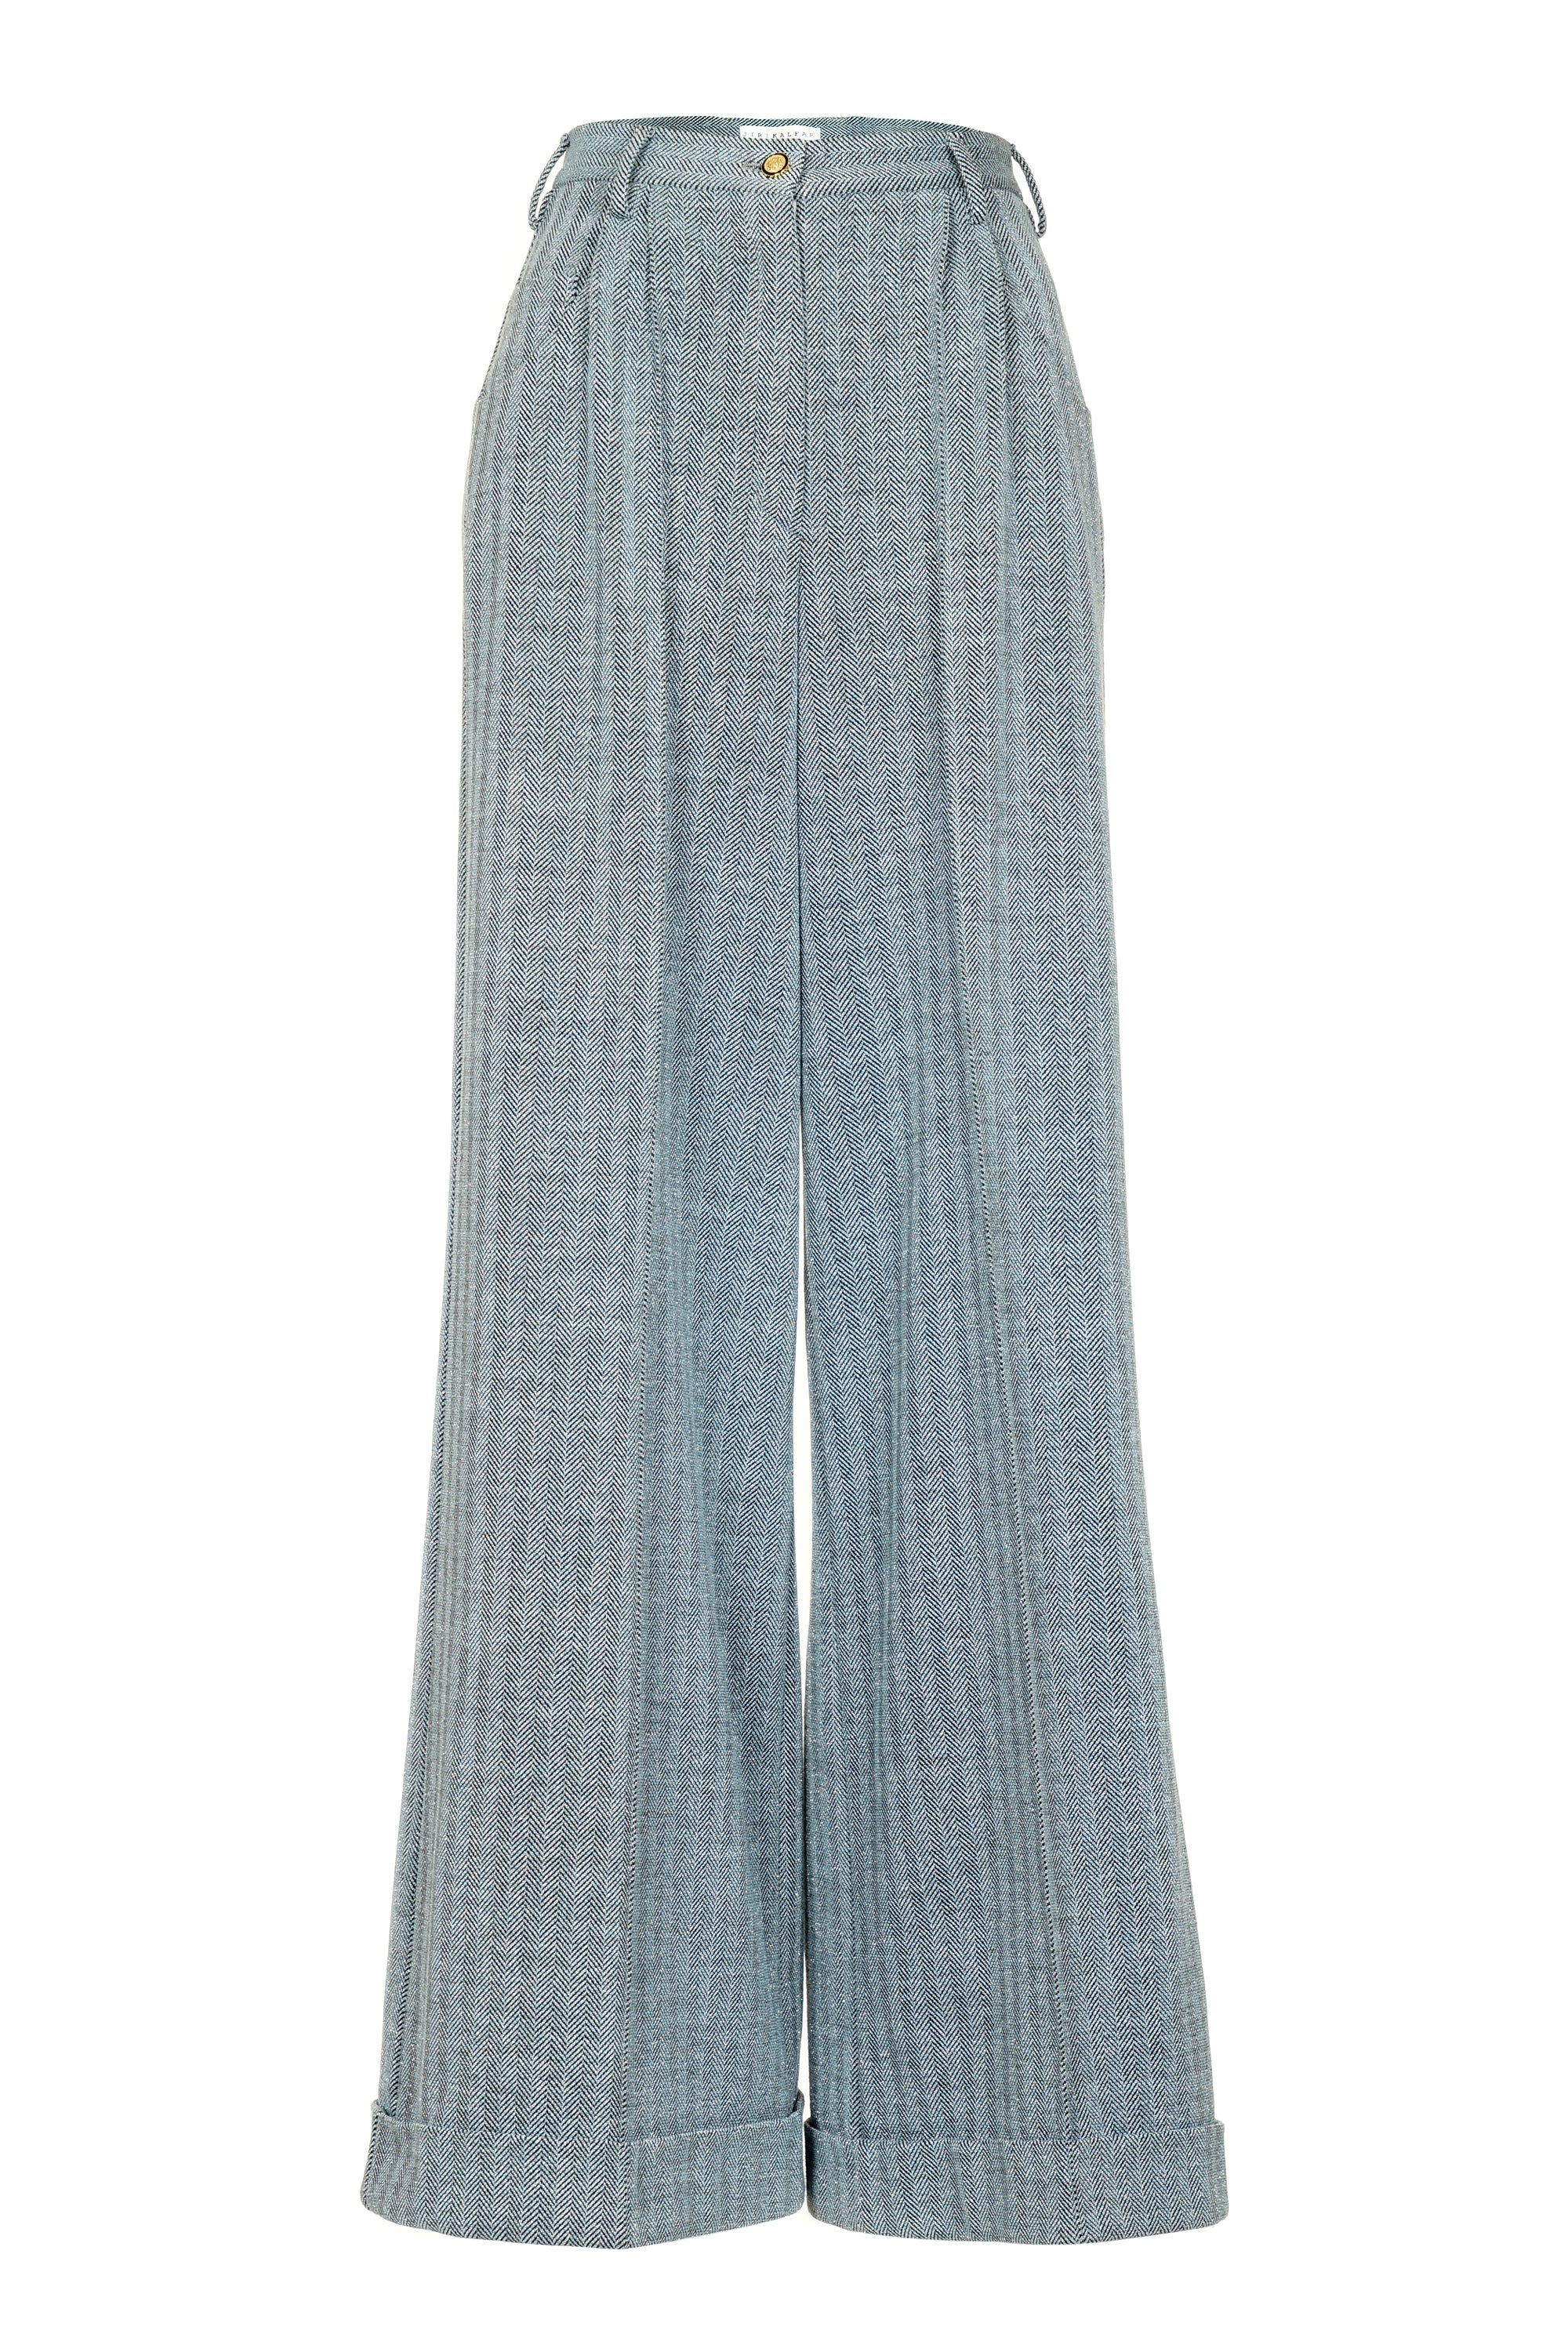 LARGE BLUE TROUSERS